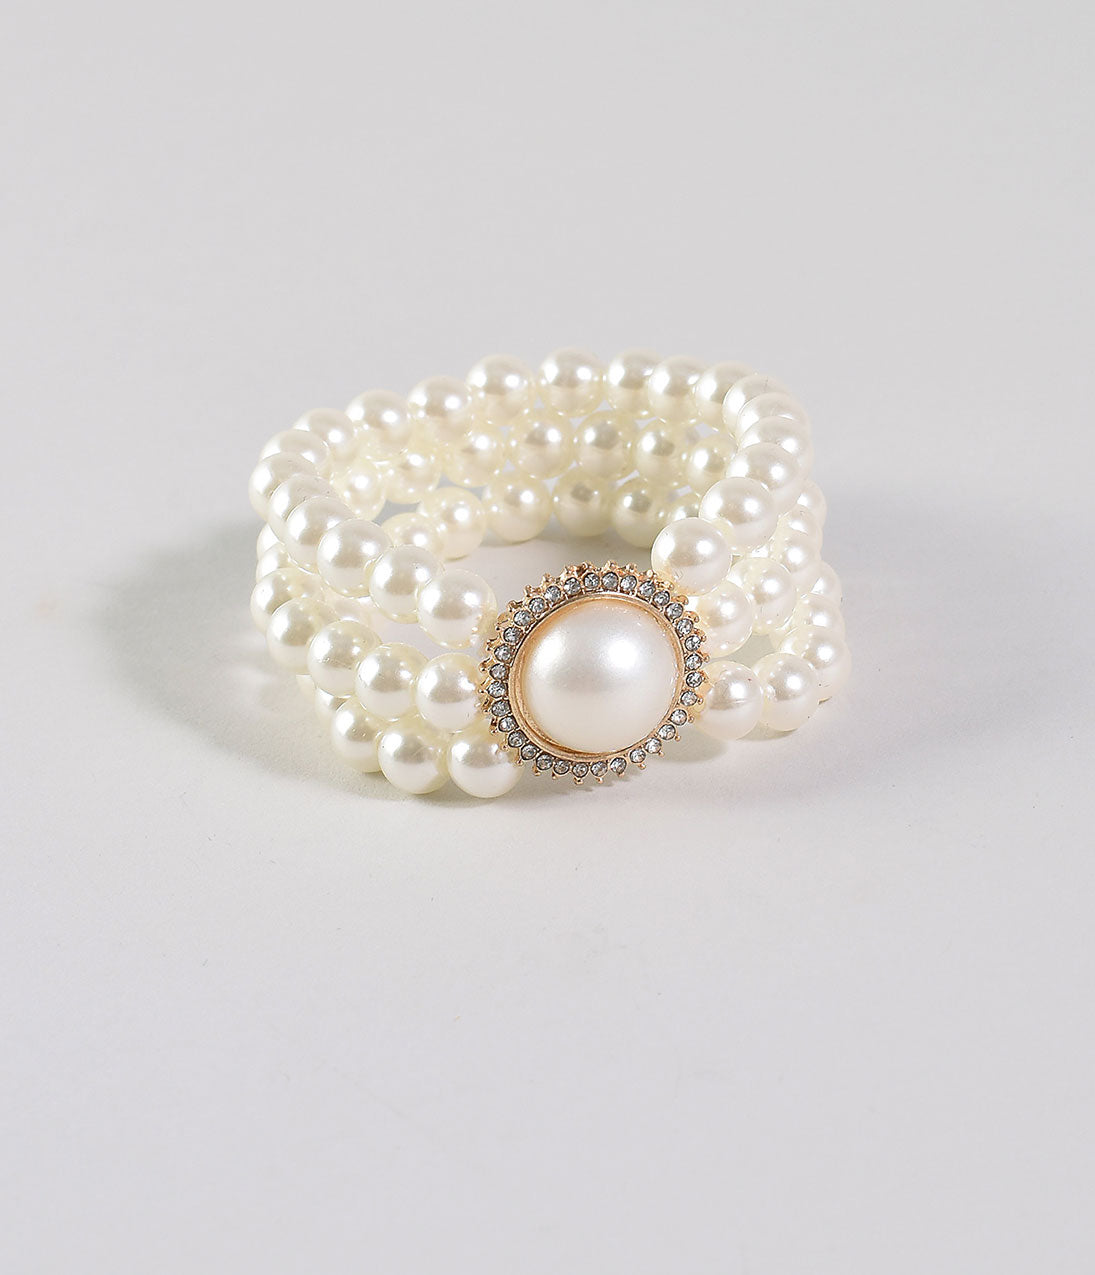 50s Jewelry: Earrings, Necklace, Brooch, Bracelet Ivory Pearl Three Strand Stretch Bracelet $18.00 AT vintagedancer.com